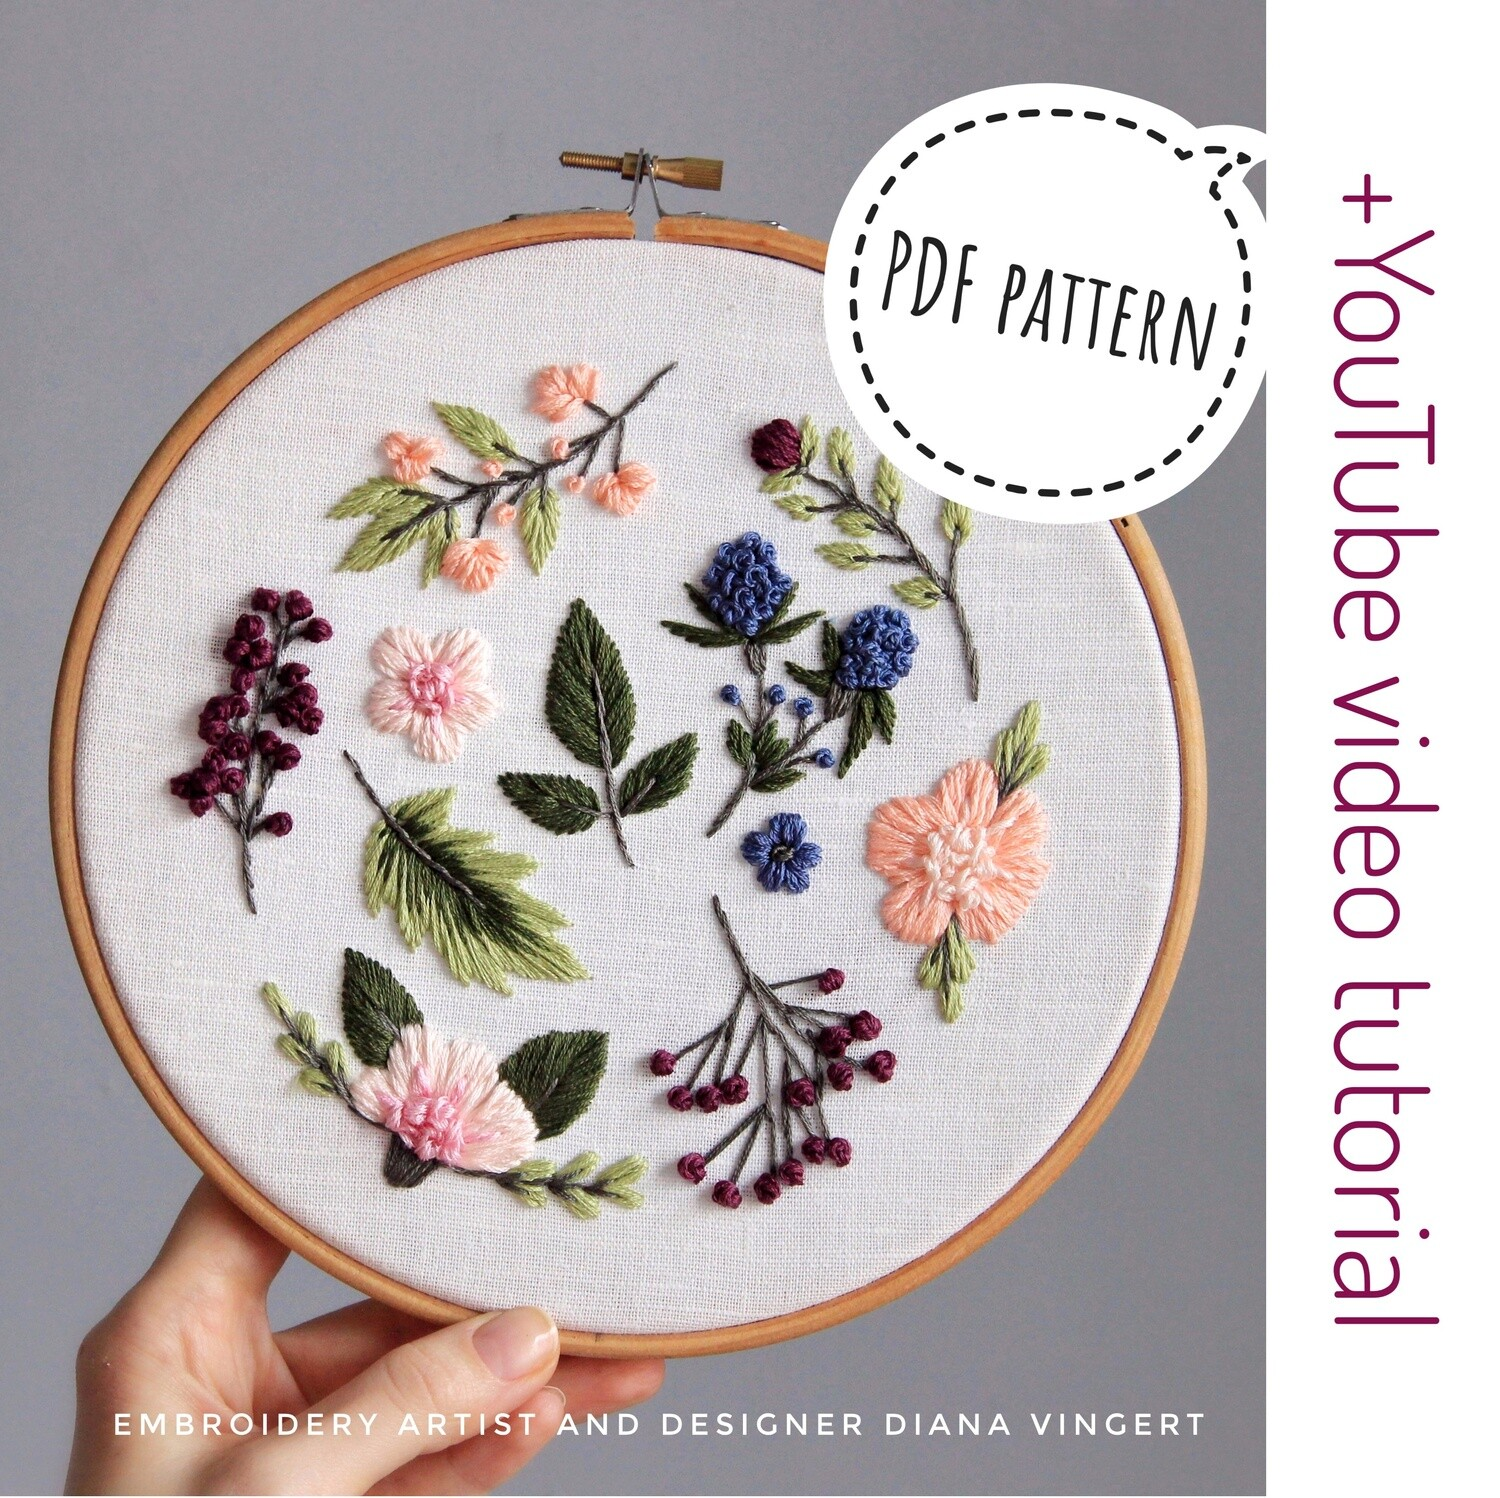 Pdf pattern+ video tutorial. Sweet berries